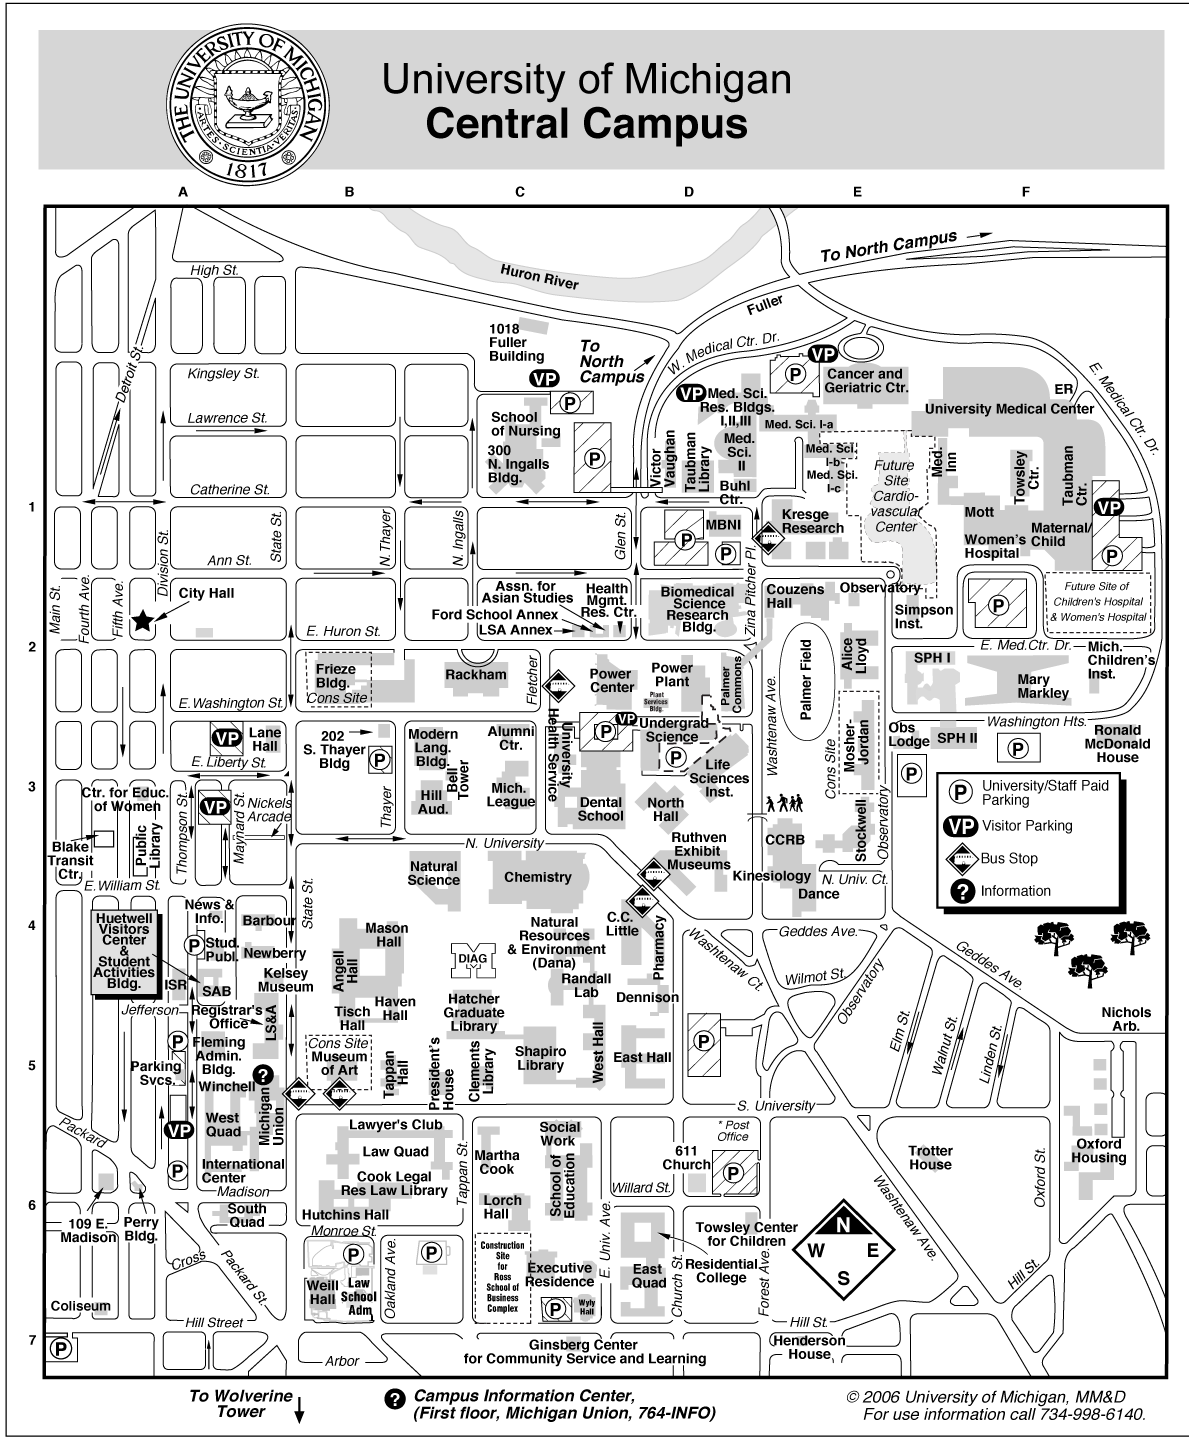 palm beach state college campus map University Of Michigan Ann Arbor Map Ann Arbor Mi Mappery palm beach state college campus map